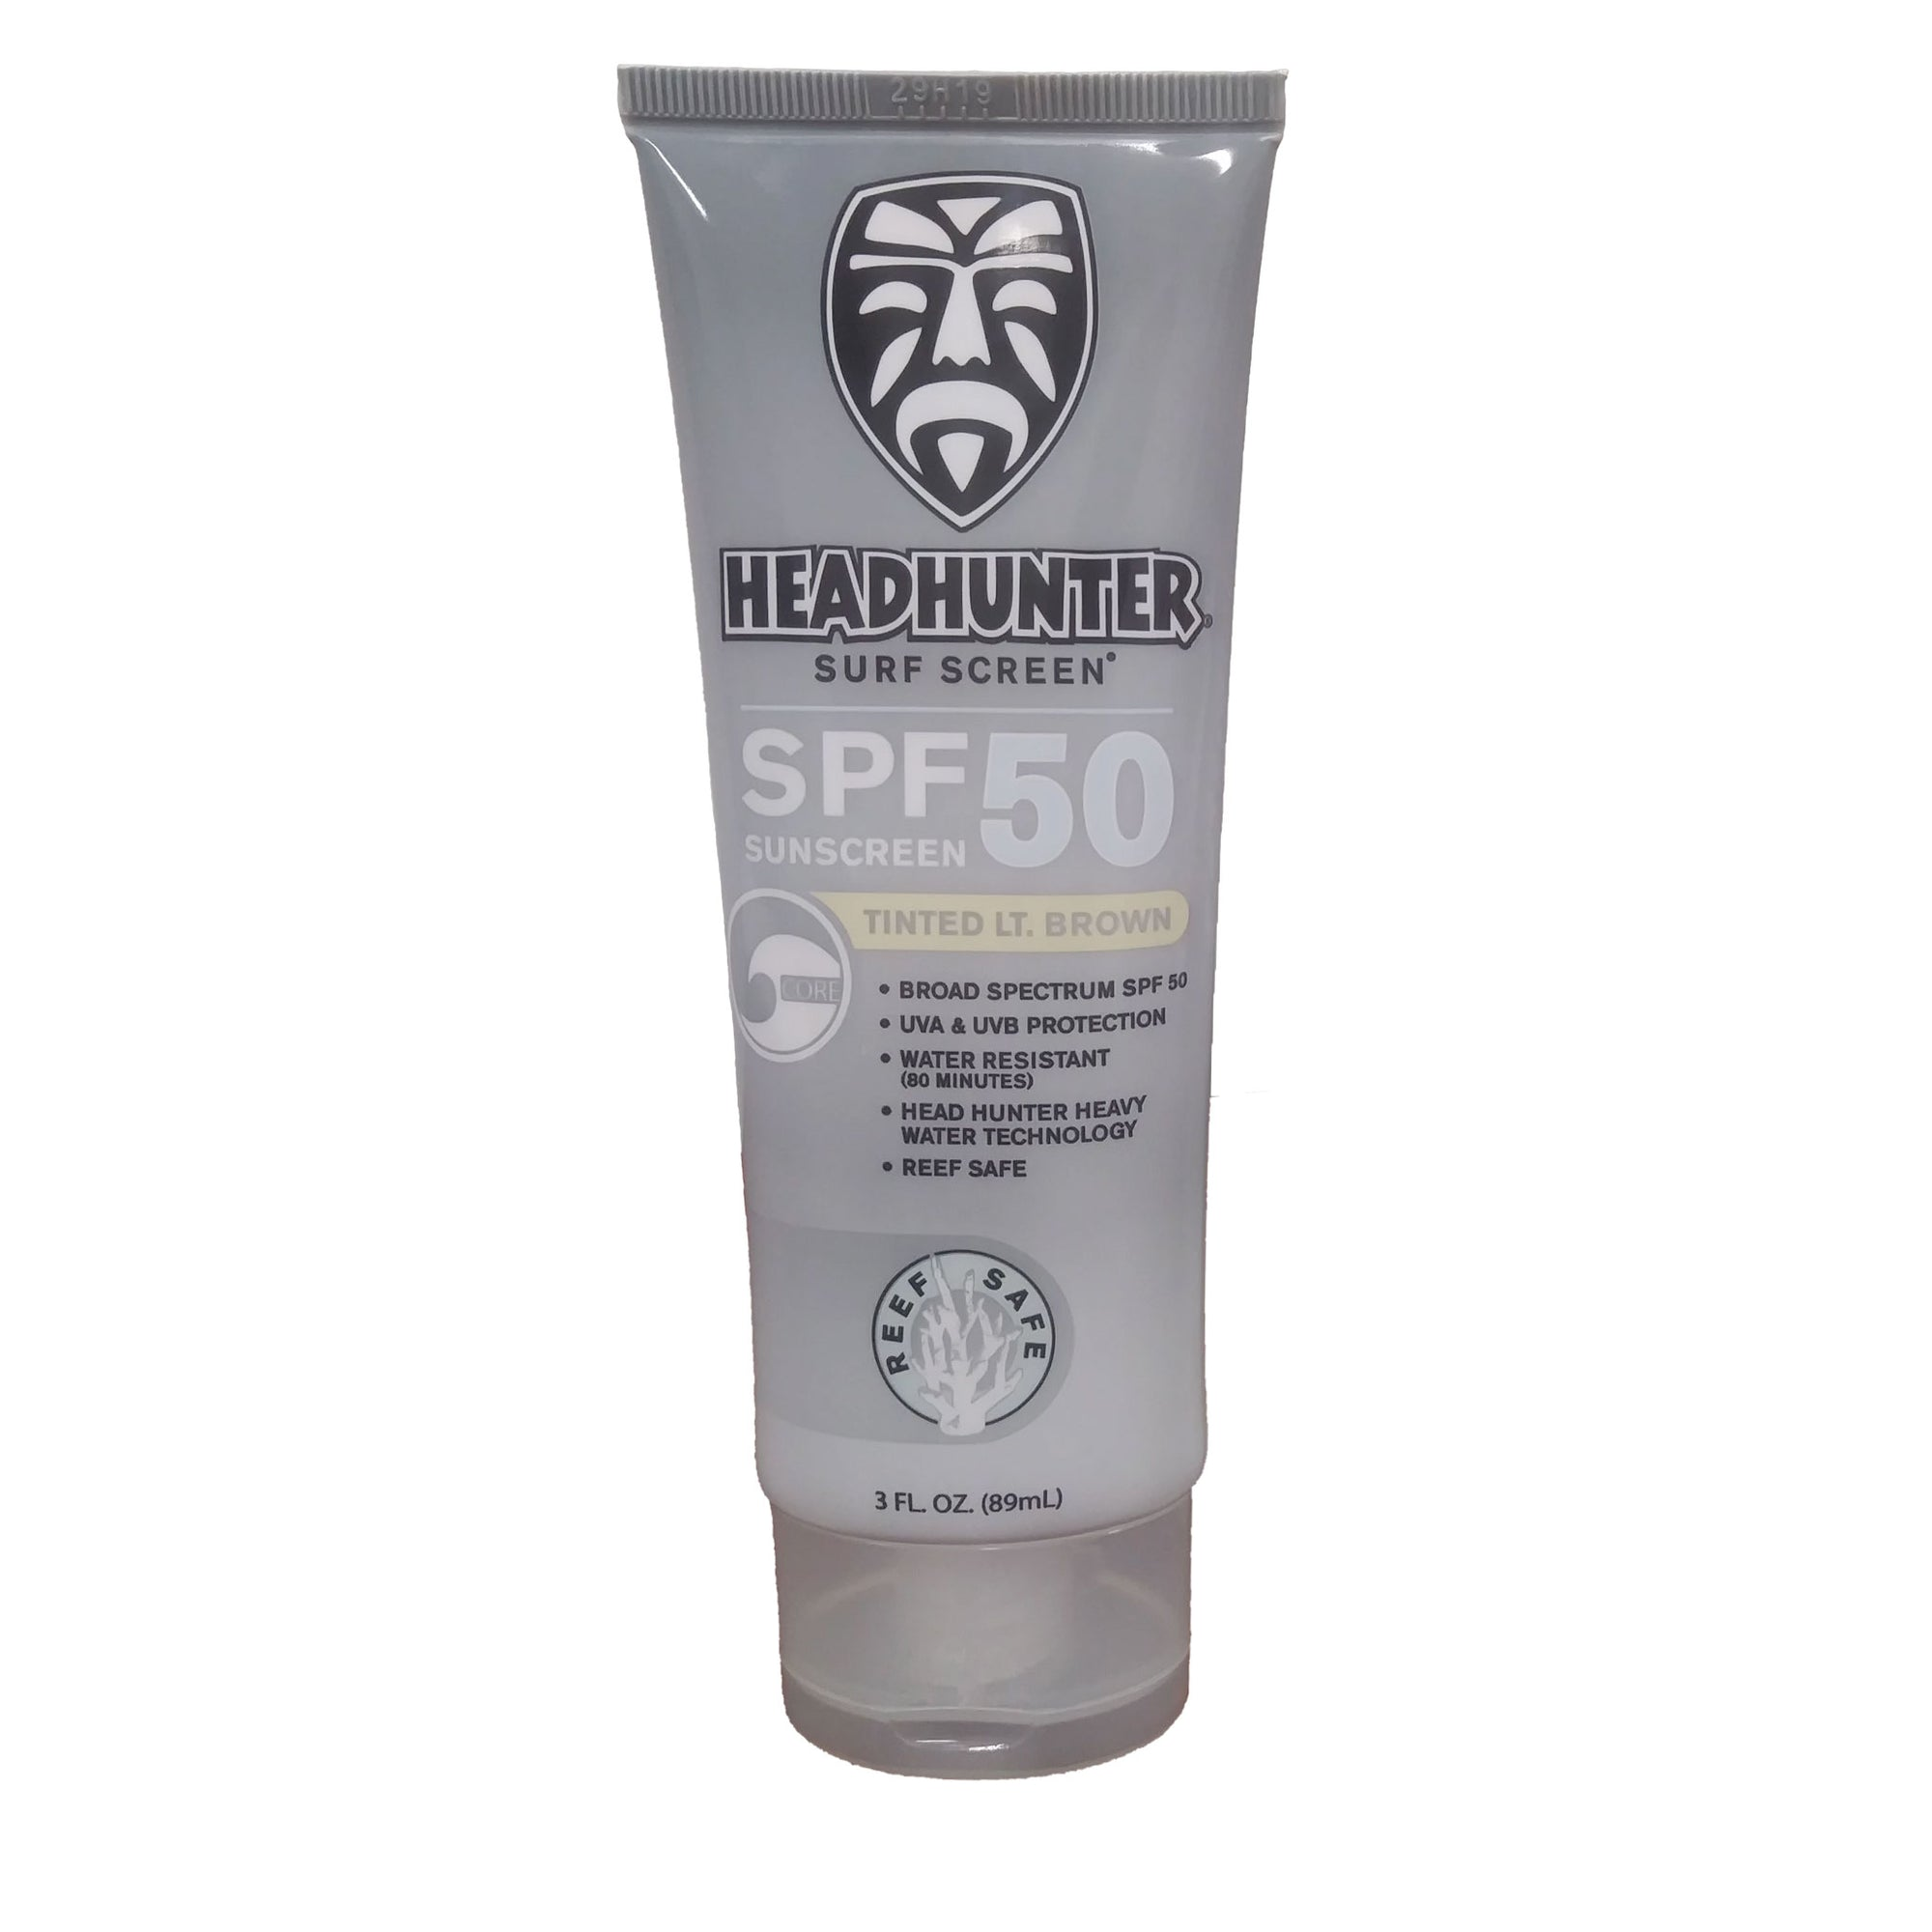 Headhunter Reef Safe Sunscreen Lotion - SPF 50